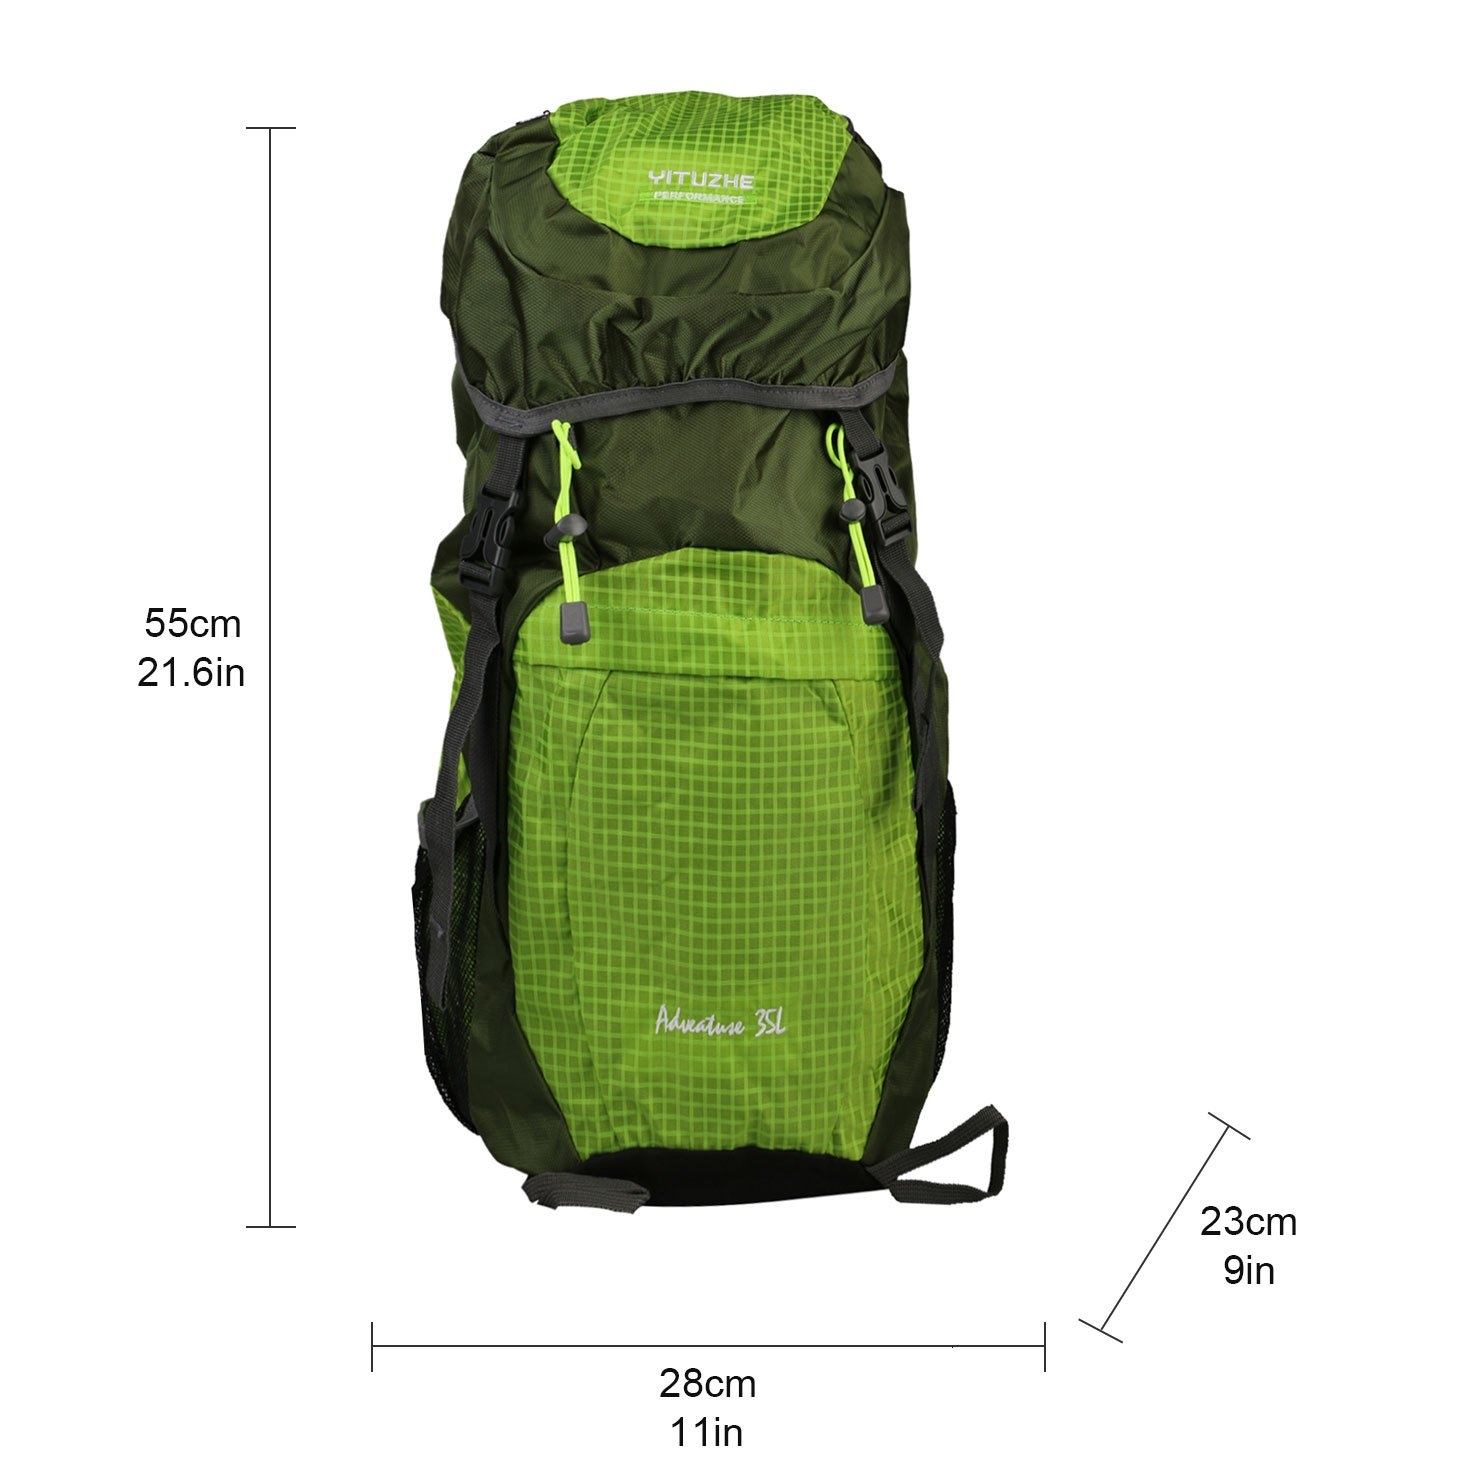 35L Waterproof Ultra Lightweight Packable Travel Hiking Climbing Backpack Daypack with Survival Whistle, Small Handy Foldable Camping Outdoor Backpack Little Bag